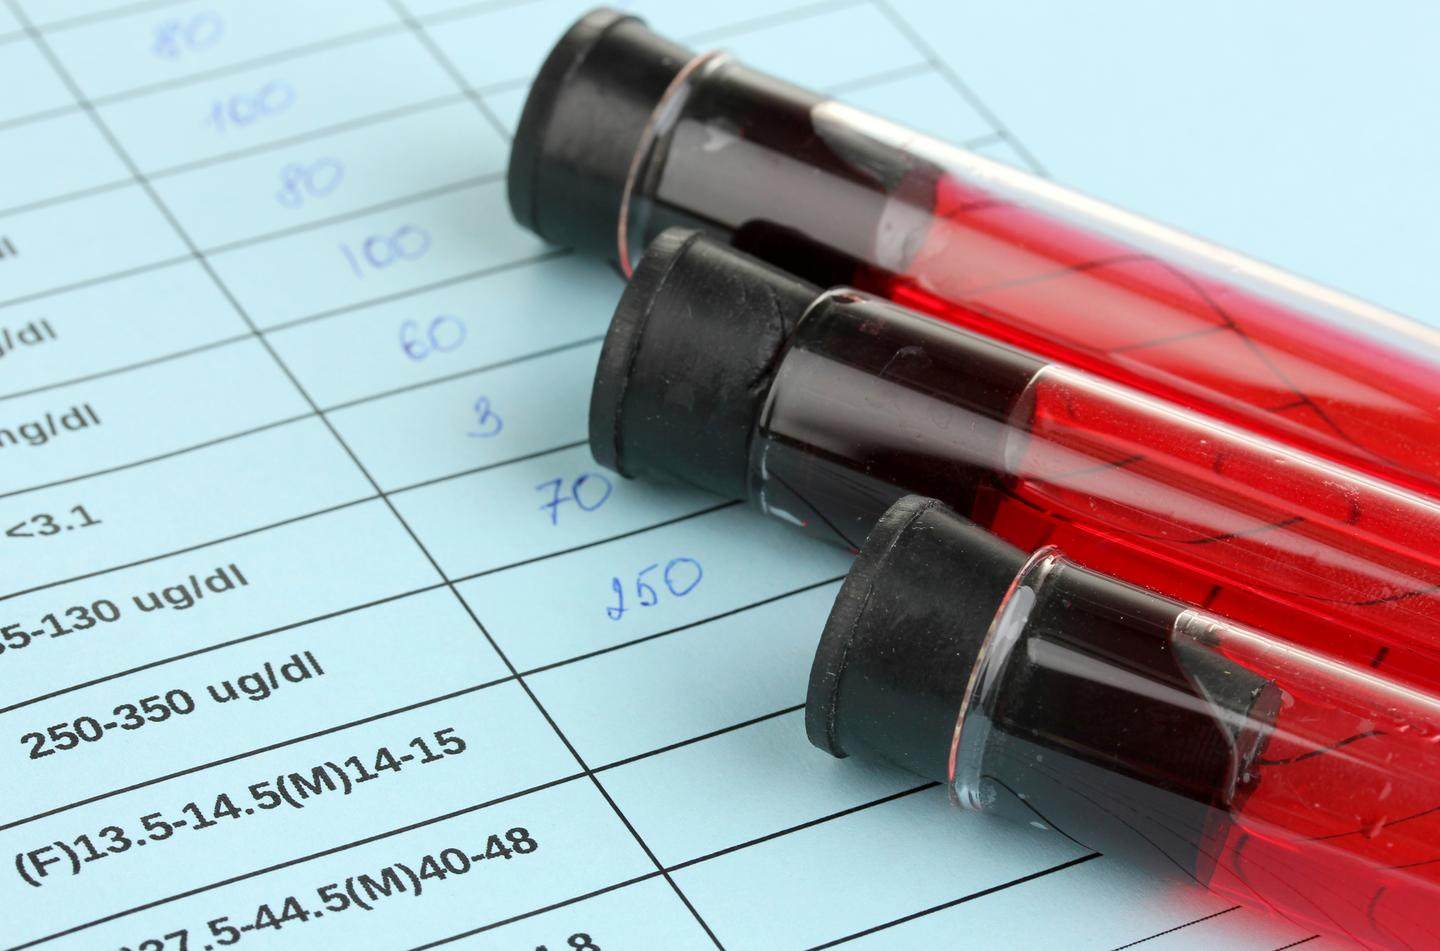 A blood test can detect DNA fragments from brain tumors circulating in a patient's bloodstream